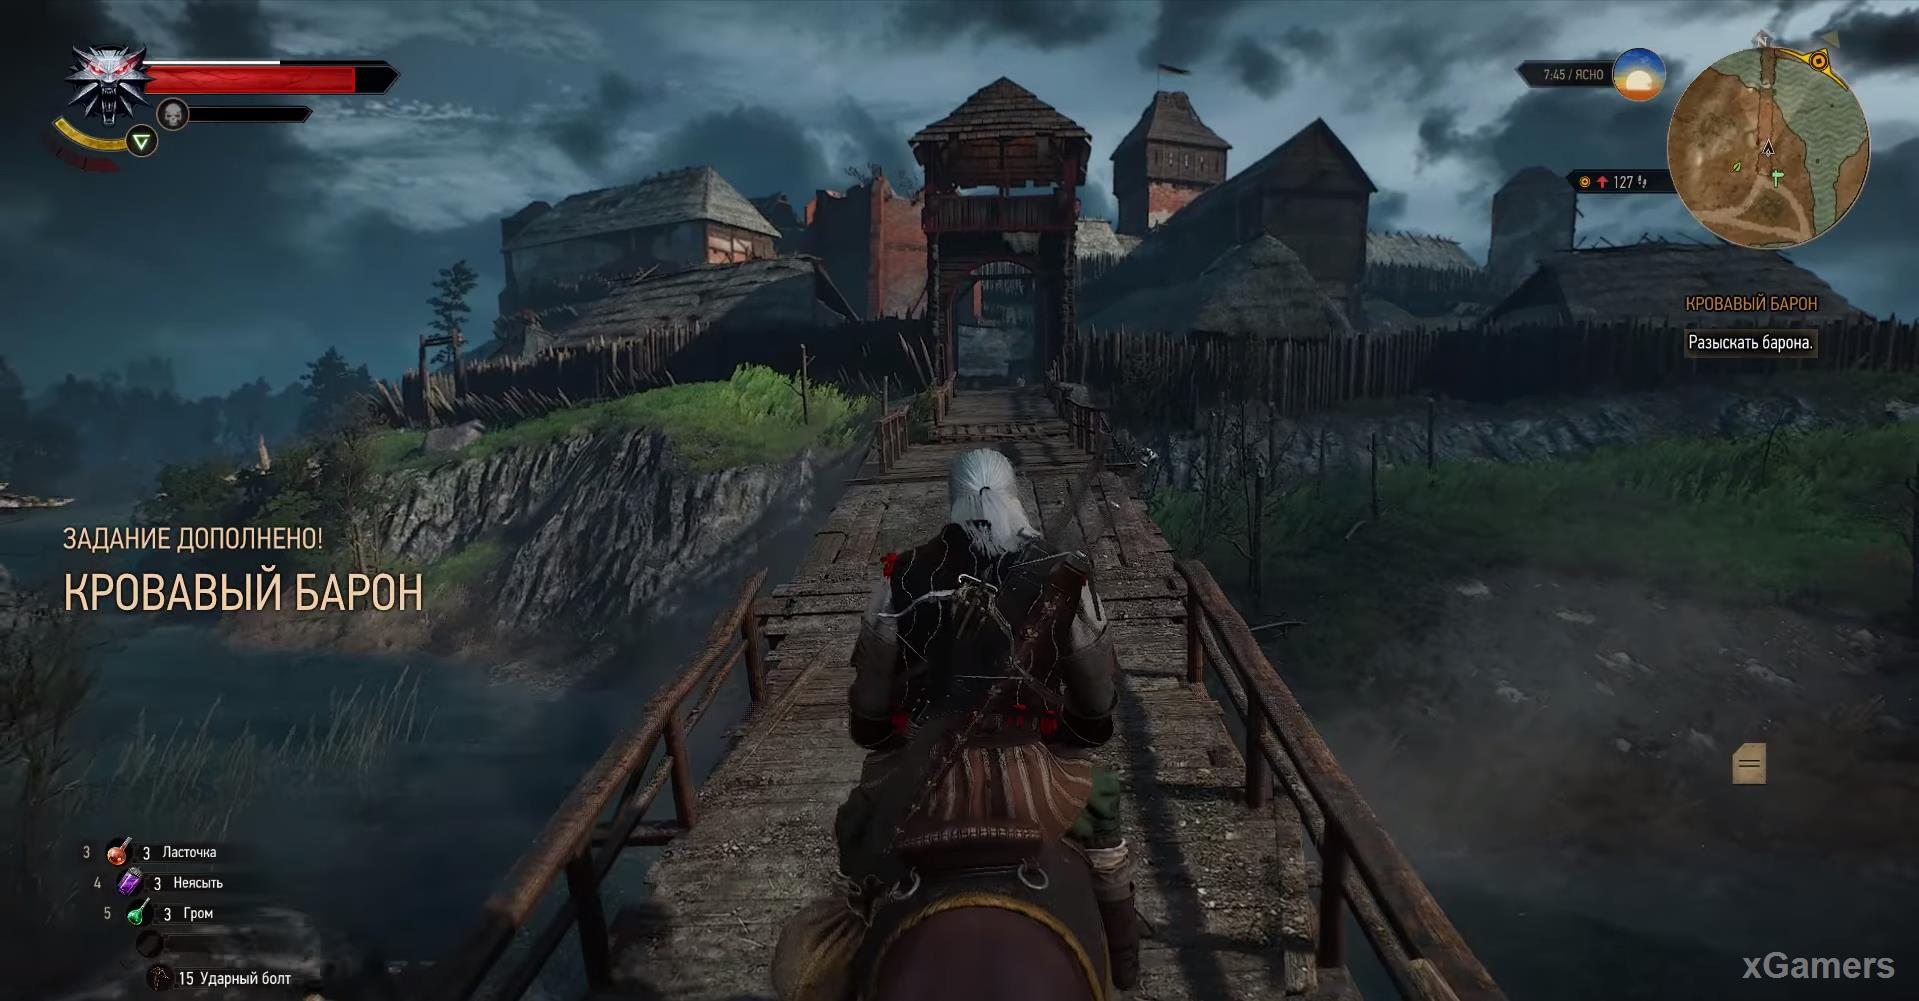 The Witcher 3 Задание «Кровавый барон»